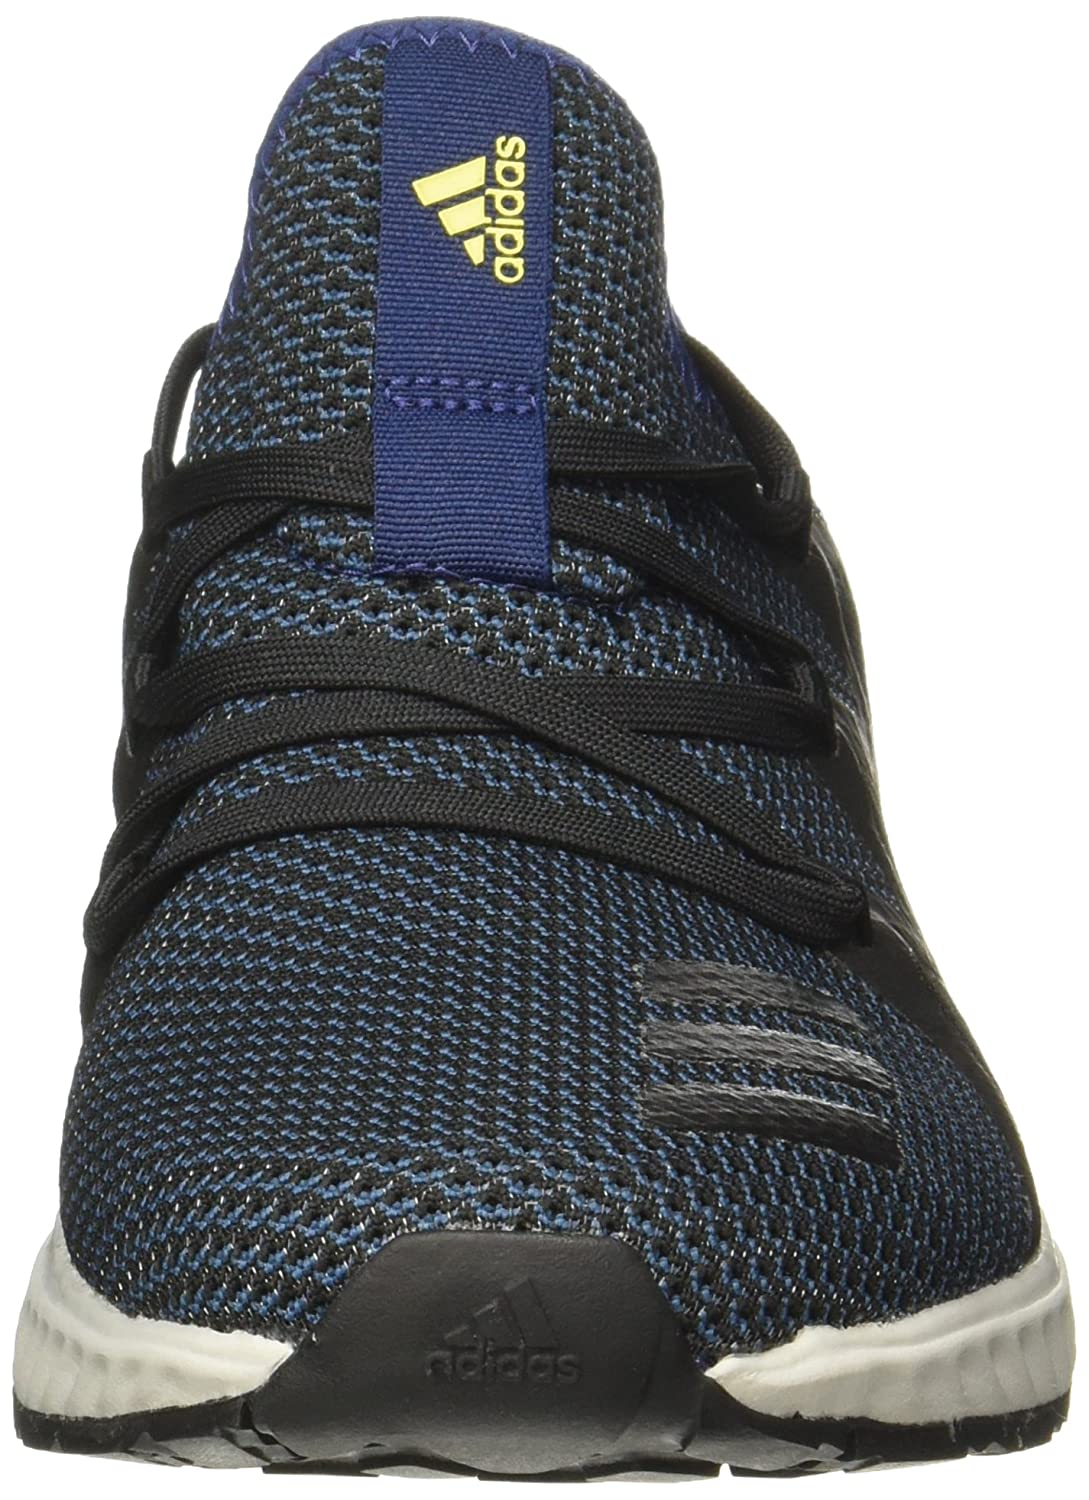 b9974941c Adidas Men s Manazero M Running Shoes  Buy Online at Low Prices in India -  Amazon.in